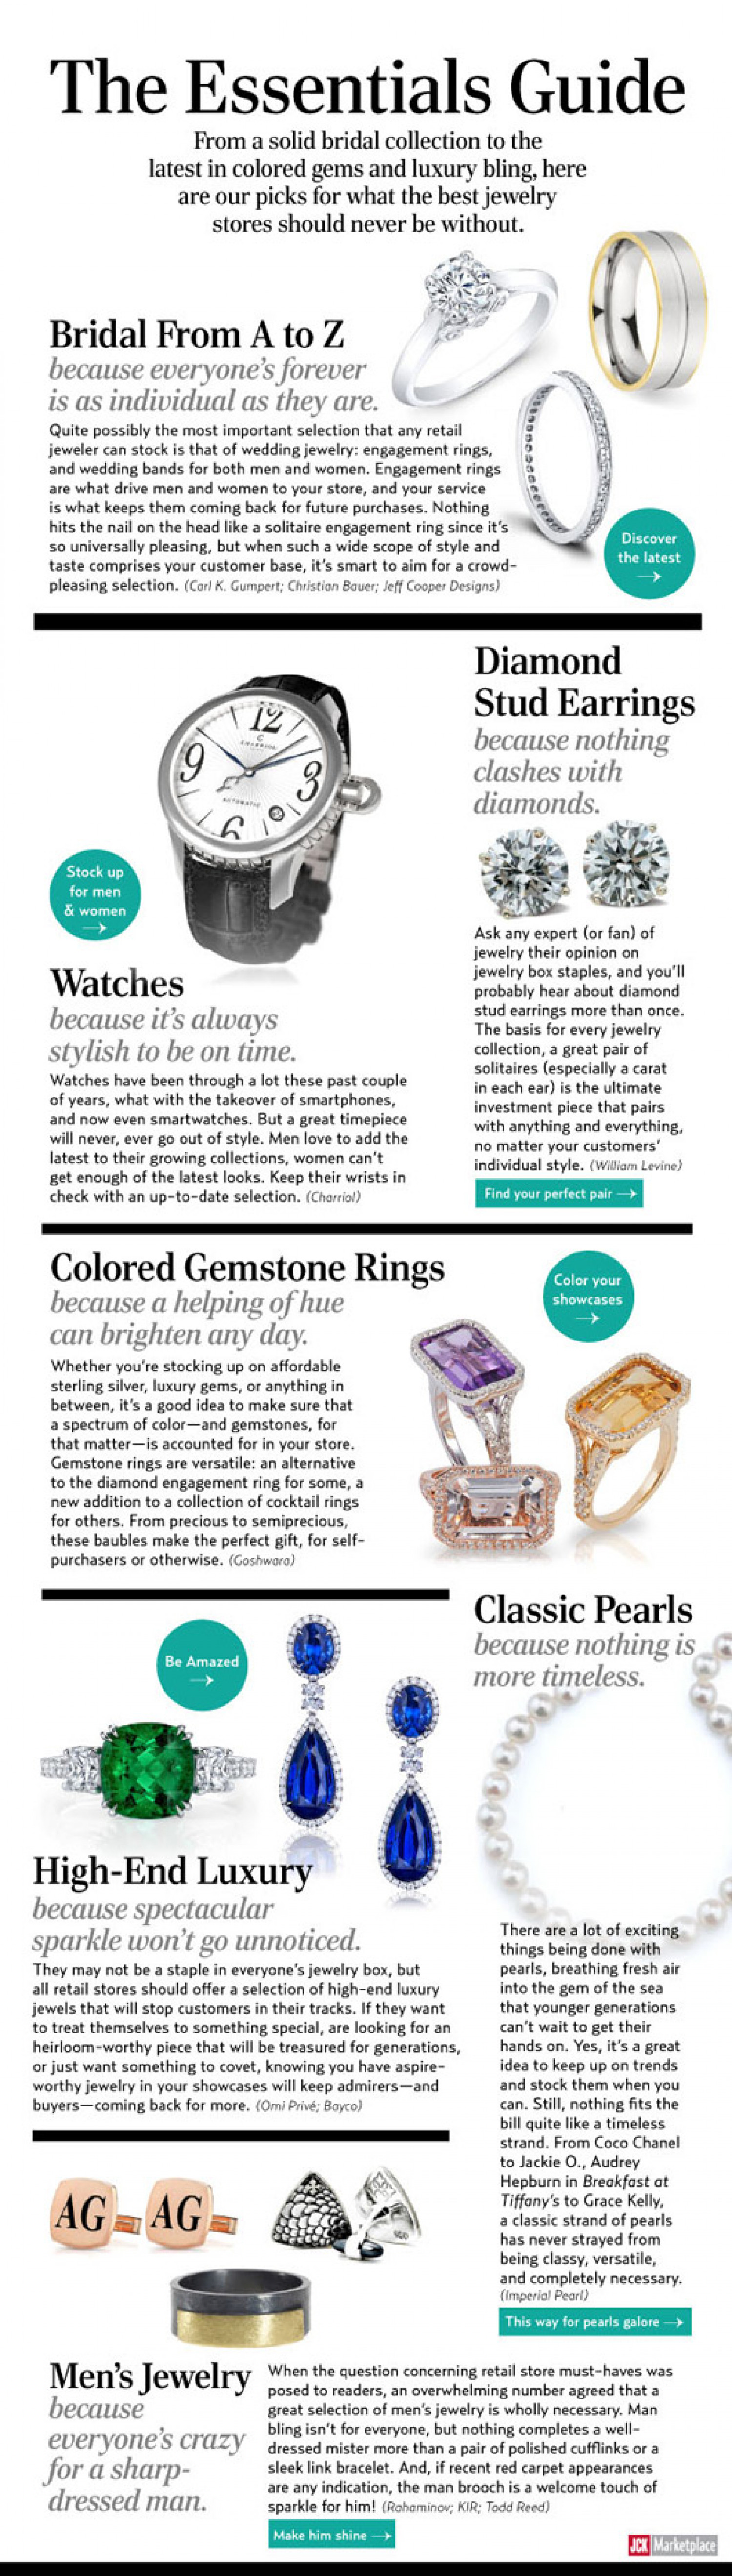 The Essentials Guide Infographic